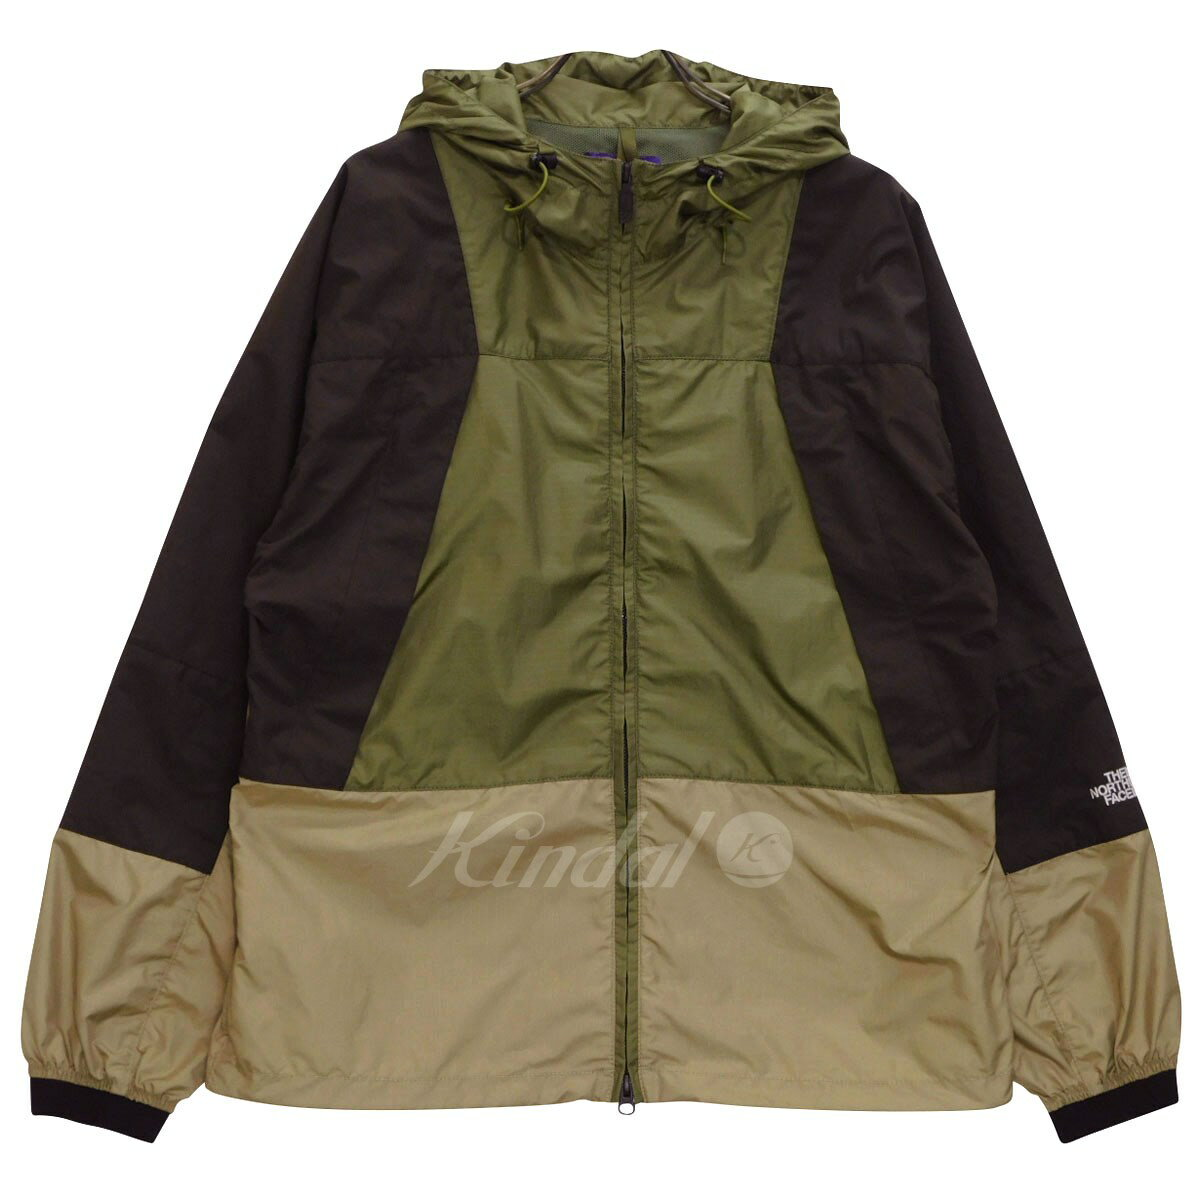 dd9484f2d THE NORTH FACE PURPLE LABEL Mountain wind parka mountain wind parka NP2924N  olive X brown X beige size: M